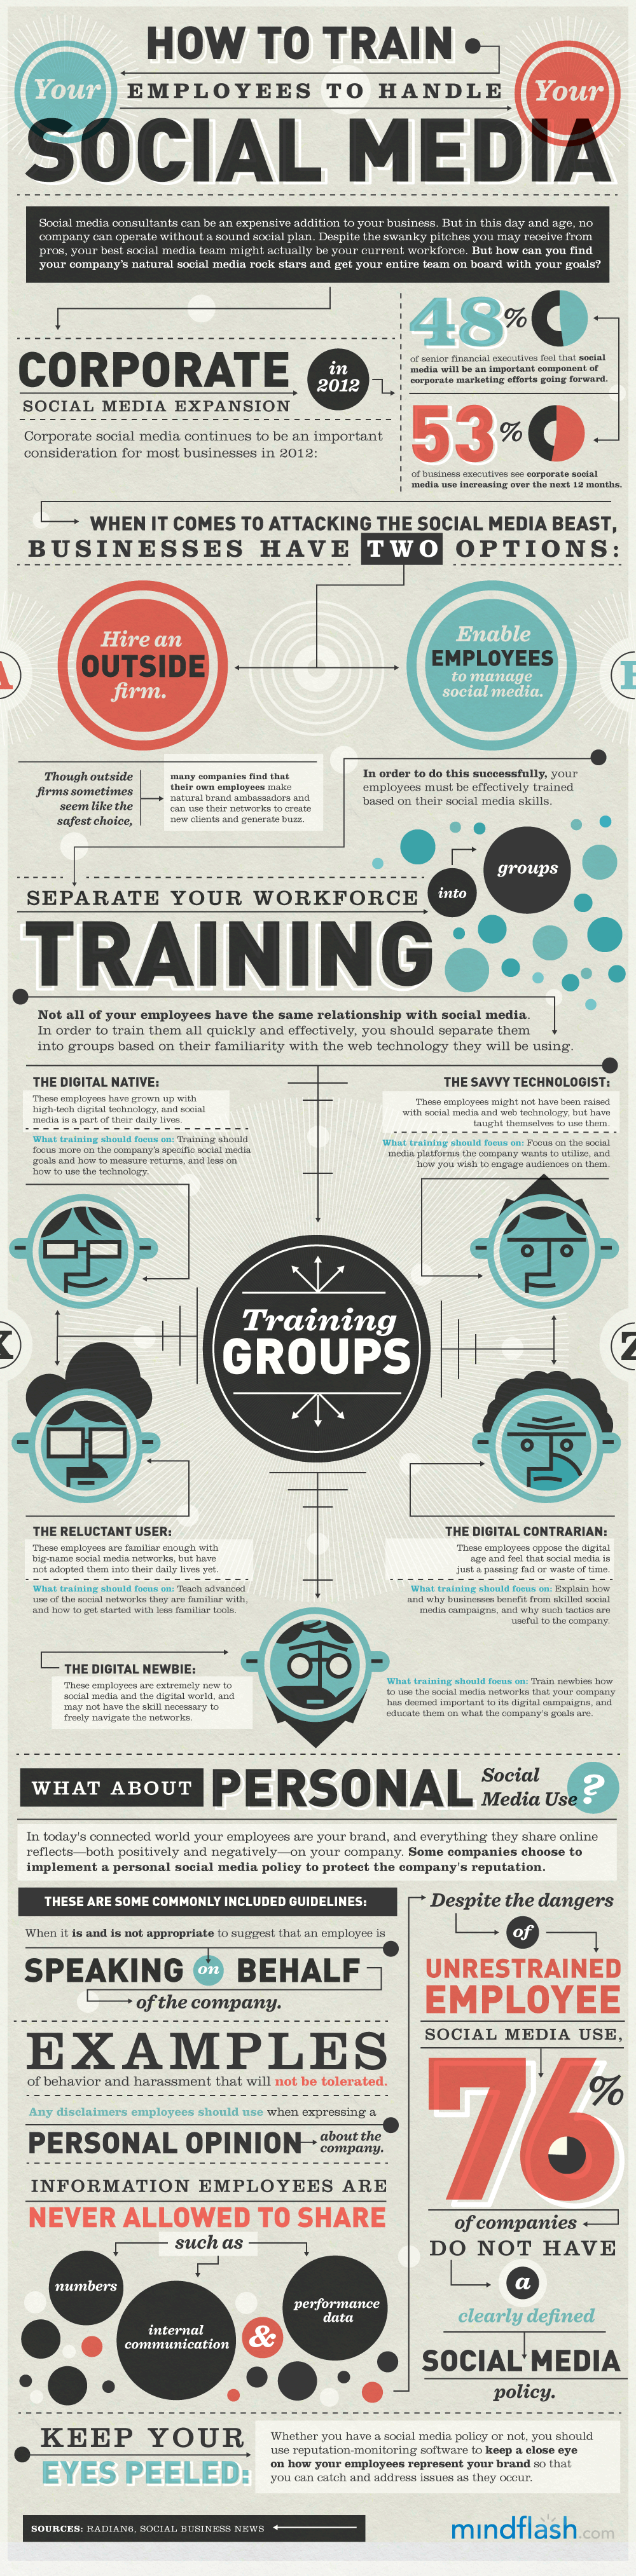 Infographic: How To Train Your Employees To Handle Your Social Media